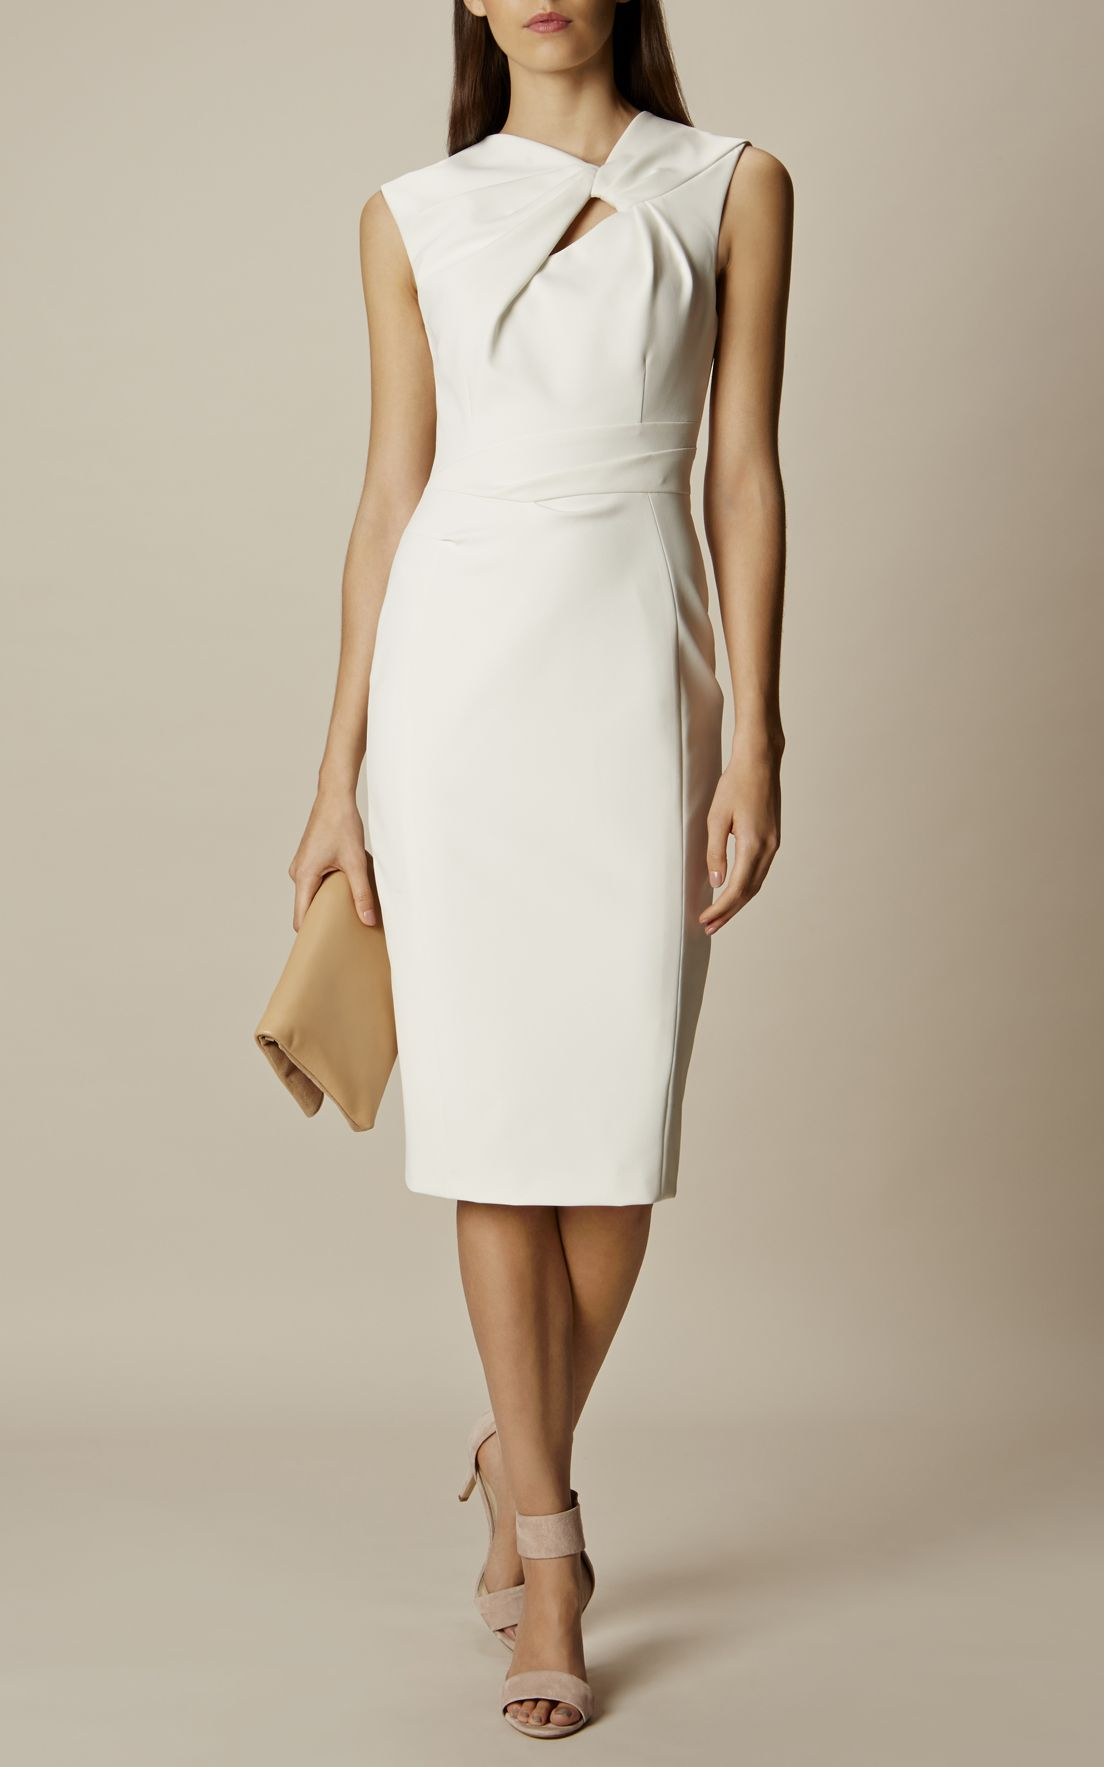 8b20e0b0b89 Karen Millen, KNOT DETAIL PENCIL DRESS Ivory | fashion | Dresses ...